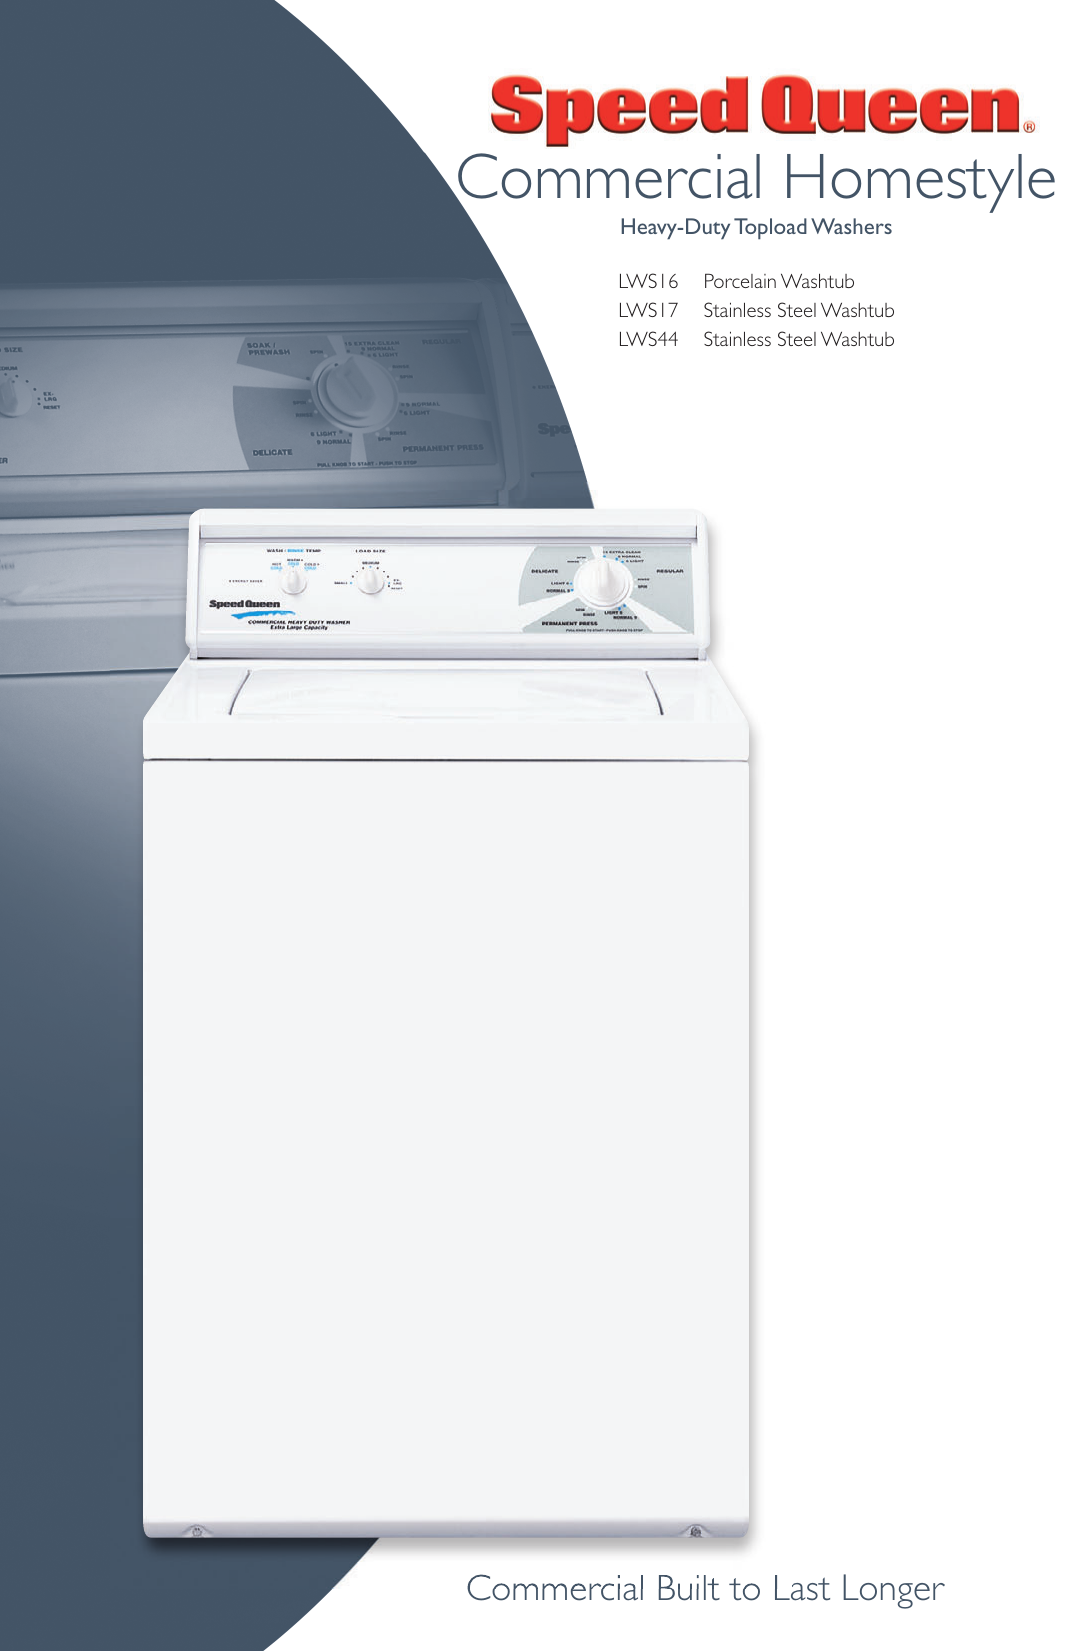 Speed Queen Lws16 Users Manual Commercial Homestyle Washers (LWS16, LWS17,  LWS44)